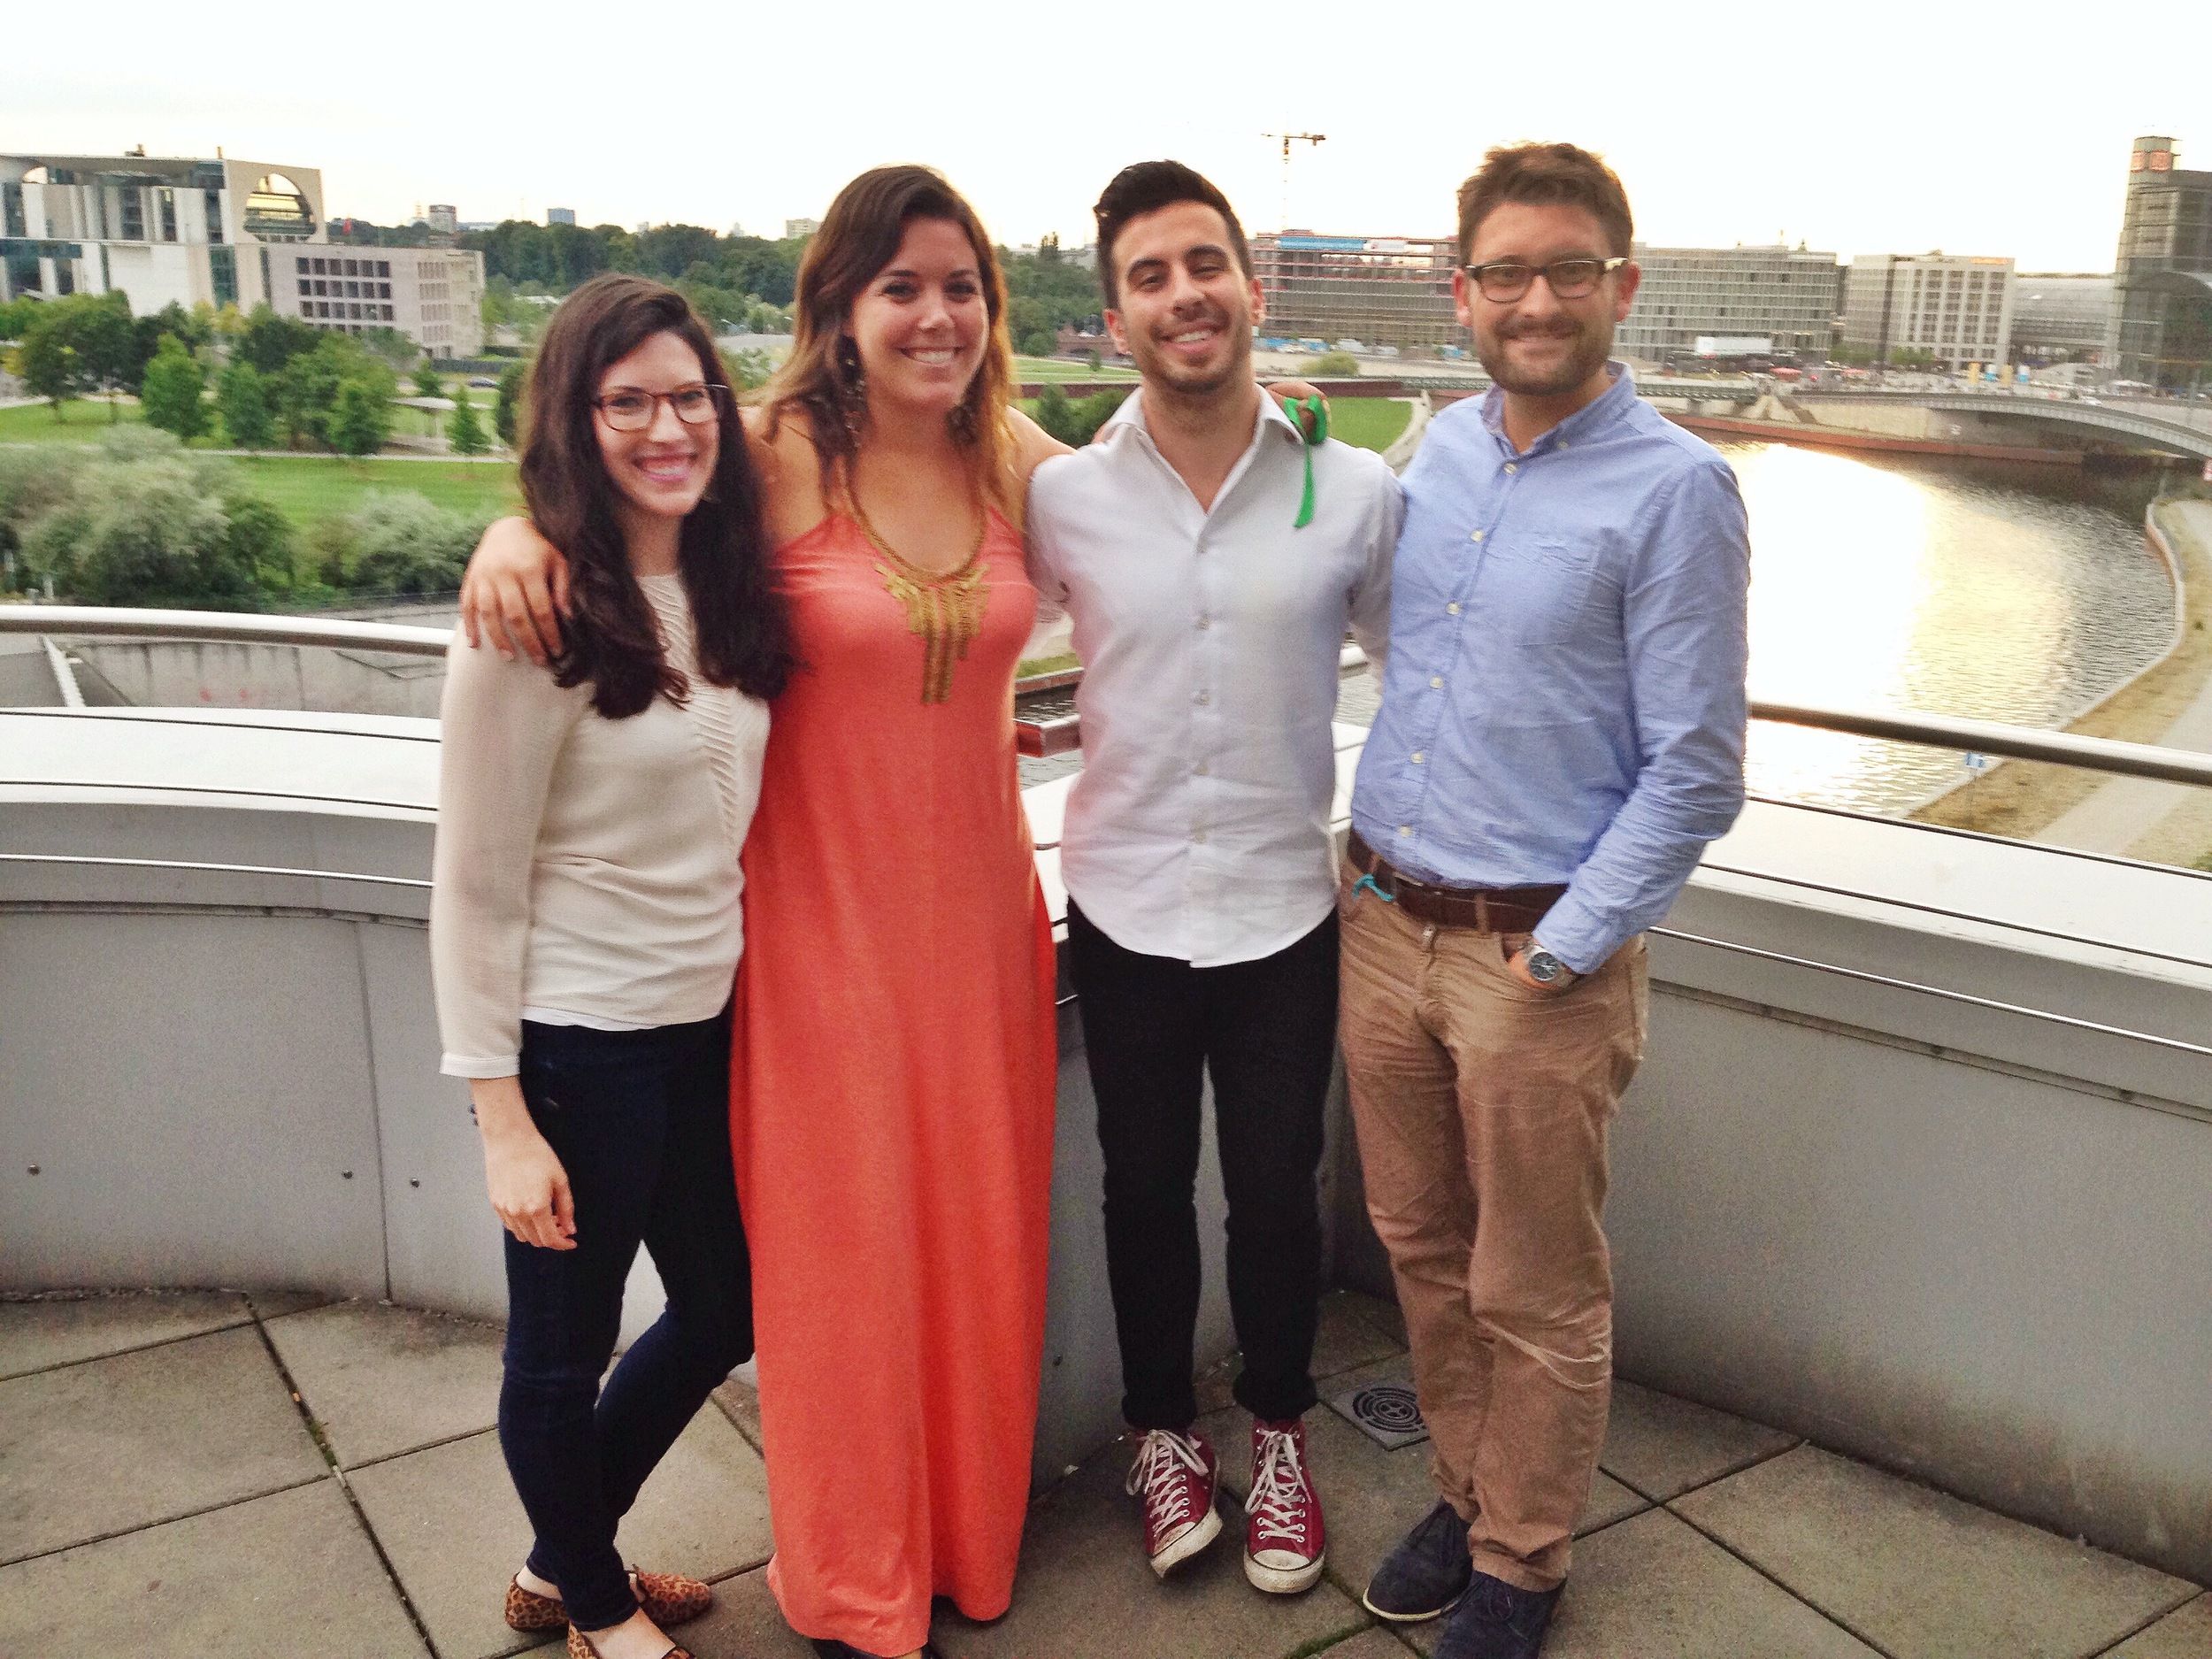 Congrats to our  180 Degrees Consulting Berlin  team on a great final presentation last night! We appreciate their recommendations on how we can achieve our full potential and save more babies' lives through timely vaccination.   Photo taken: August 4, 2014.